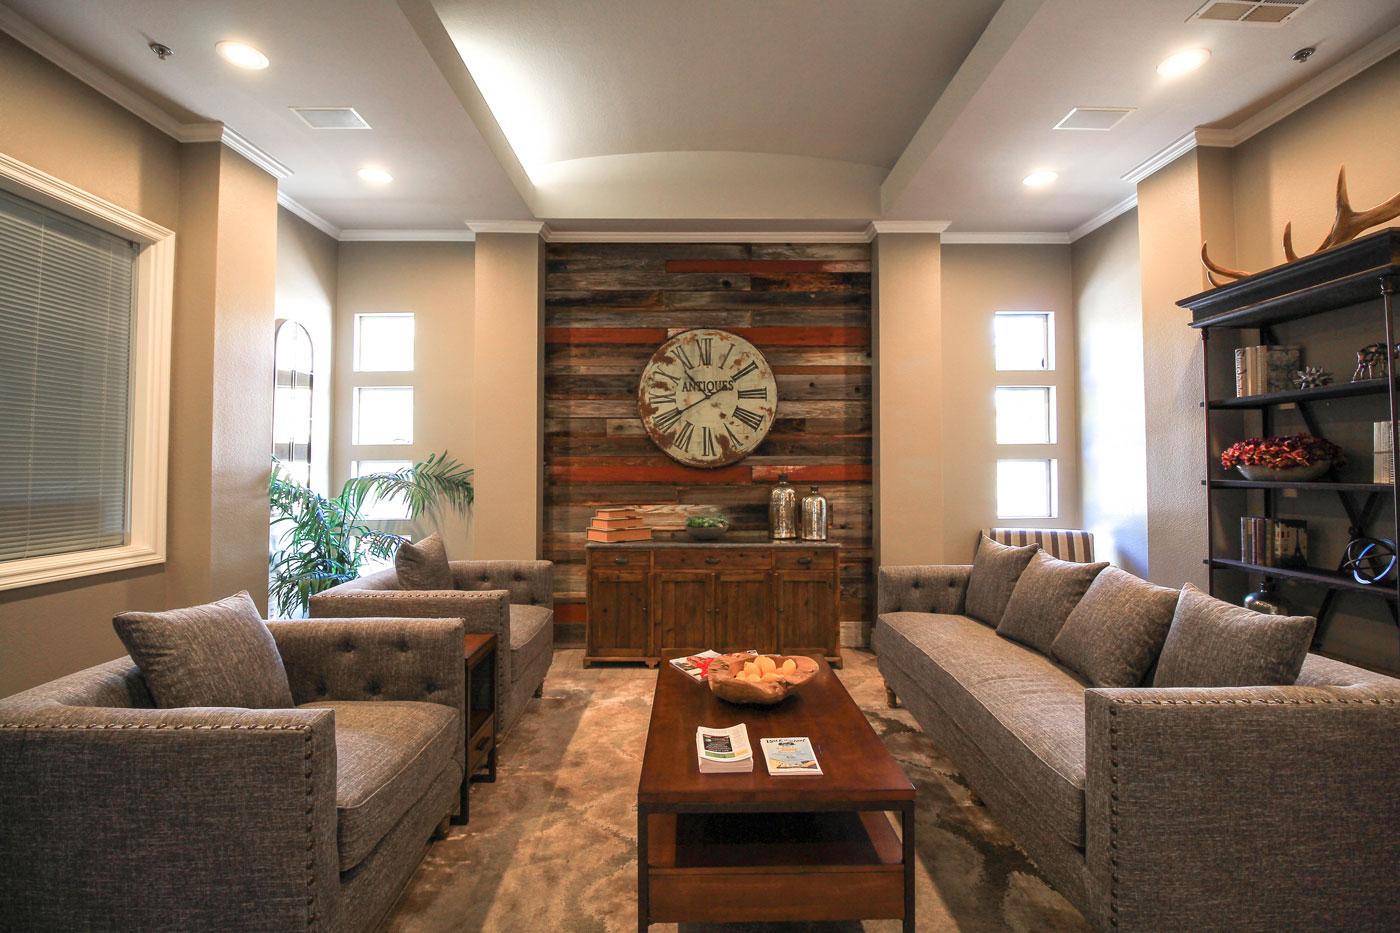 Lounge room with grey couches and clock on wall at San Tropez in Las Vegas.